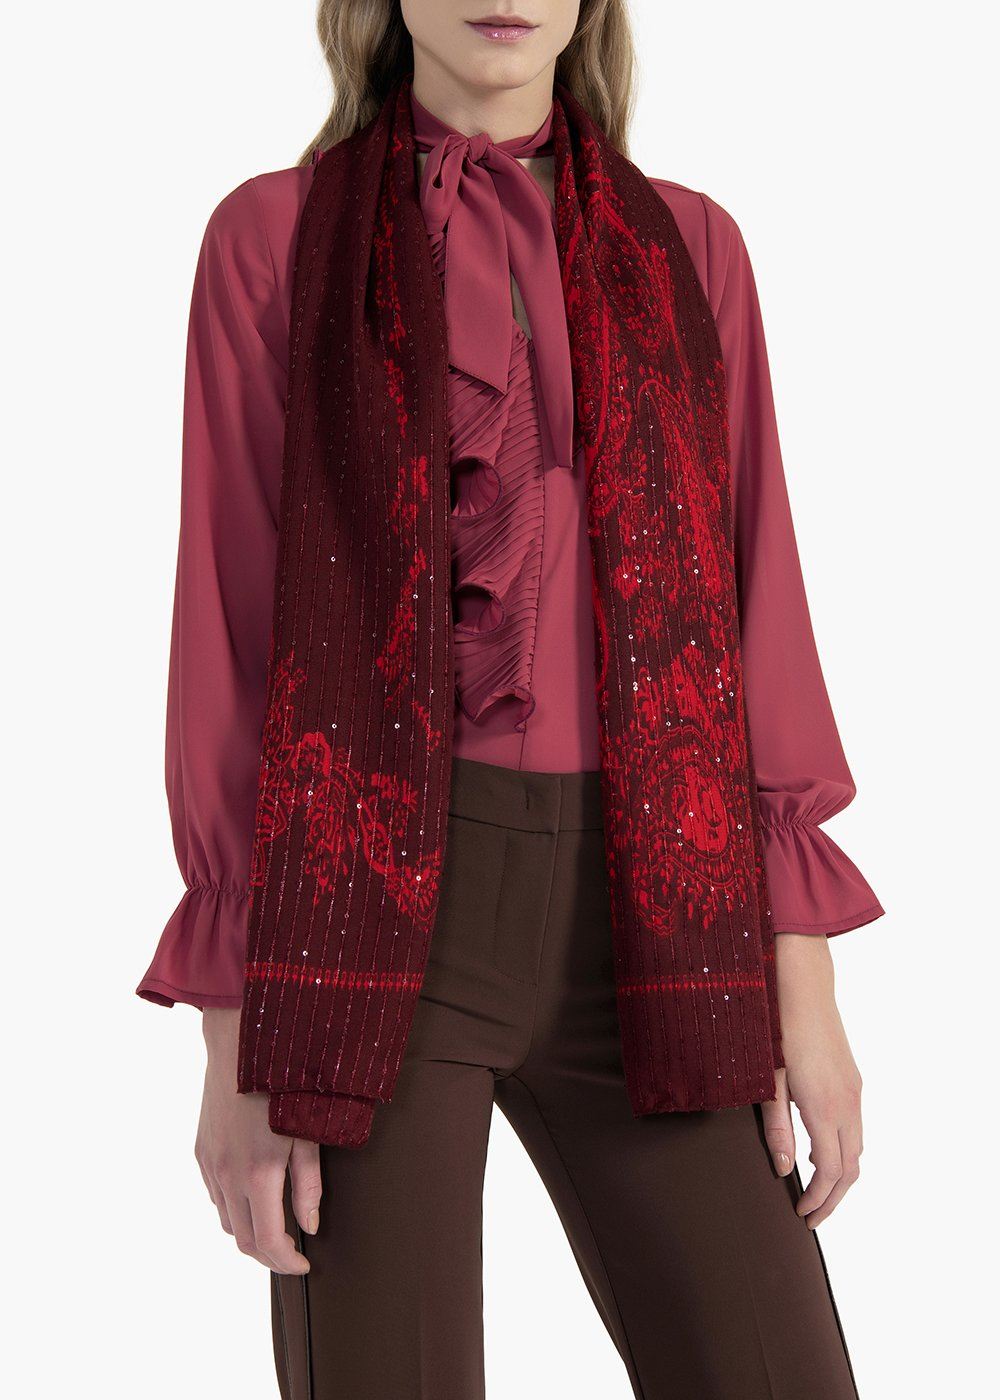 Cashmere scarf Strain and scrip printed with sequins - Bordeaux /   Passione Fantasia - Woman